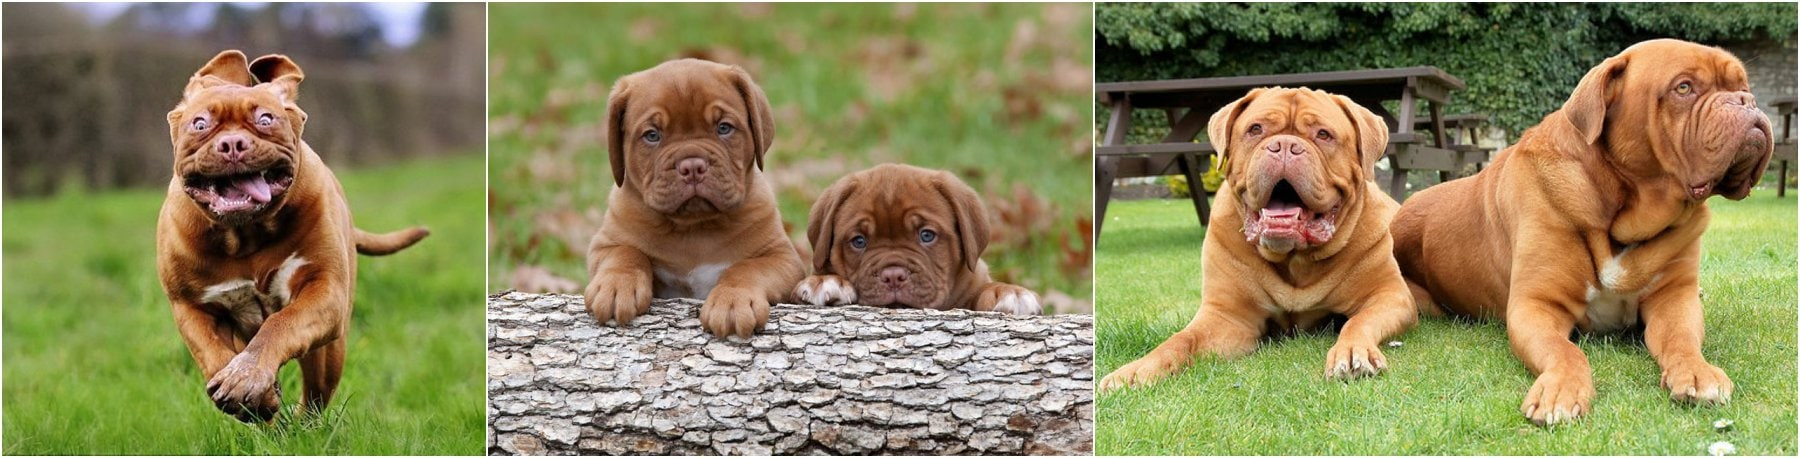 photos of dogue de bordeaux